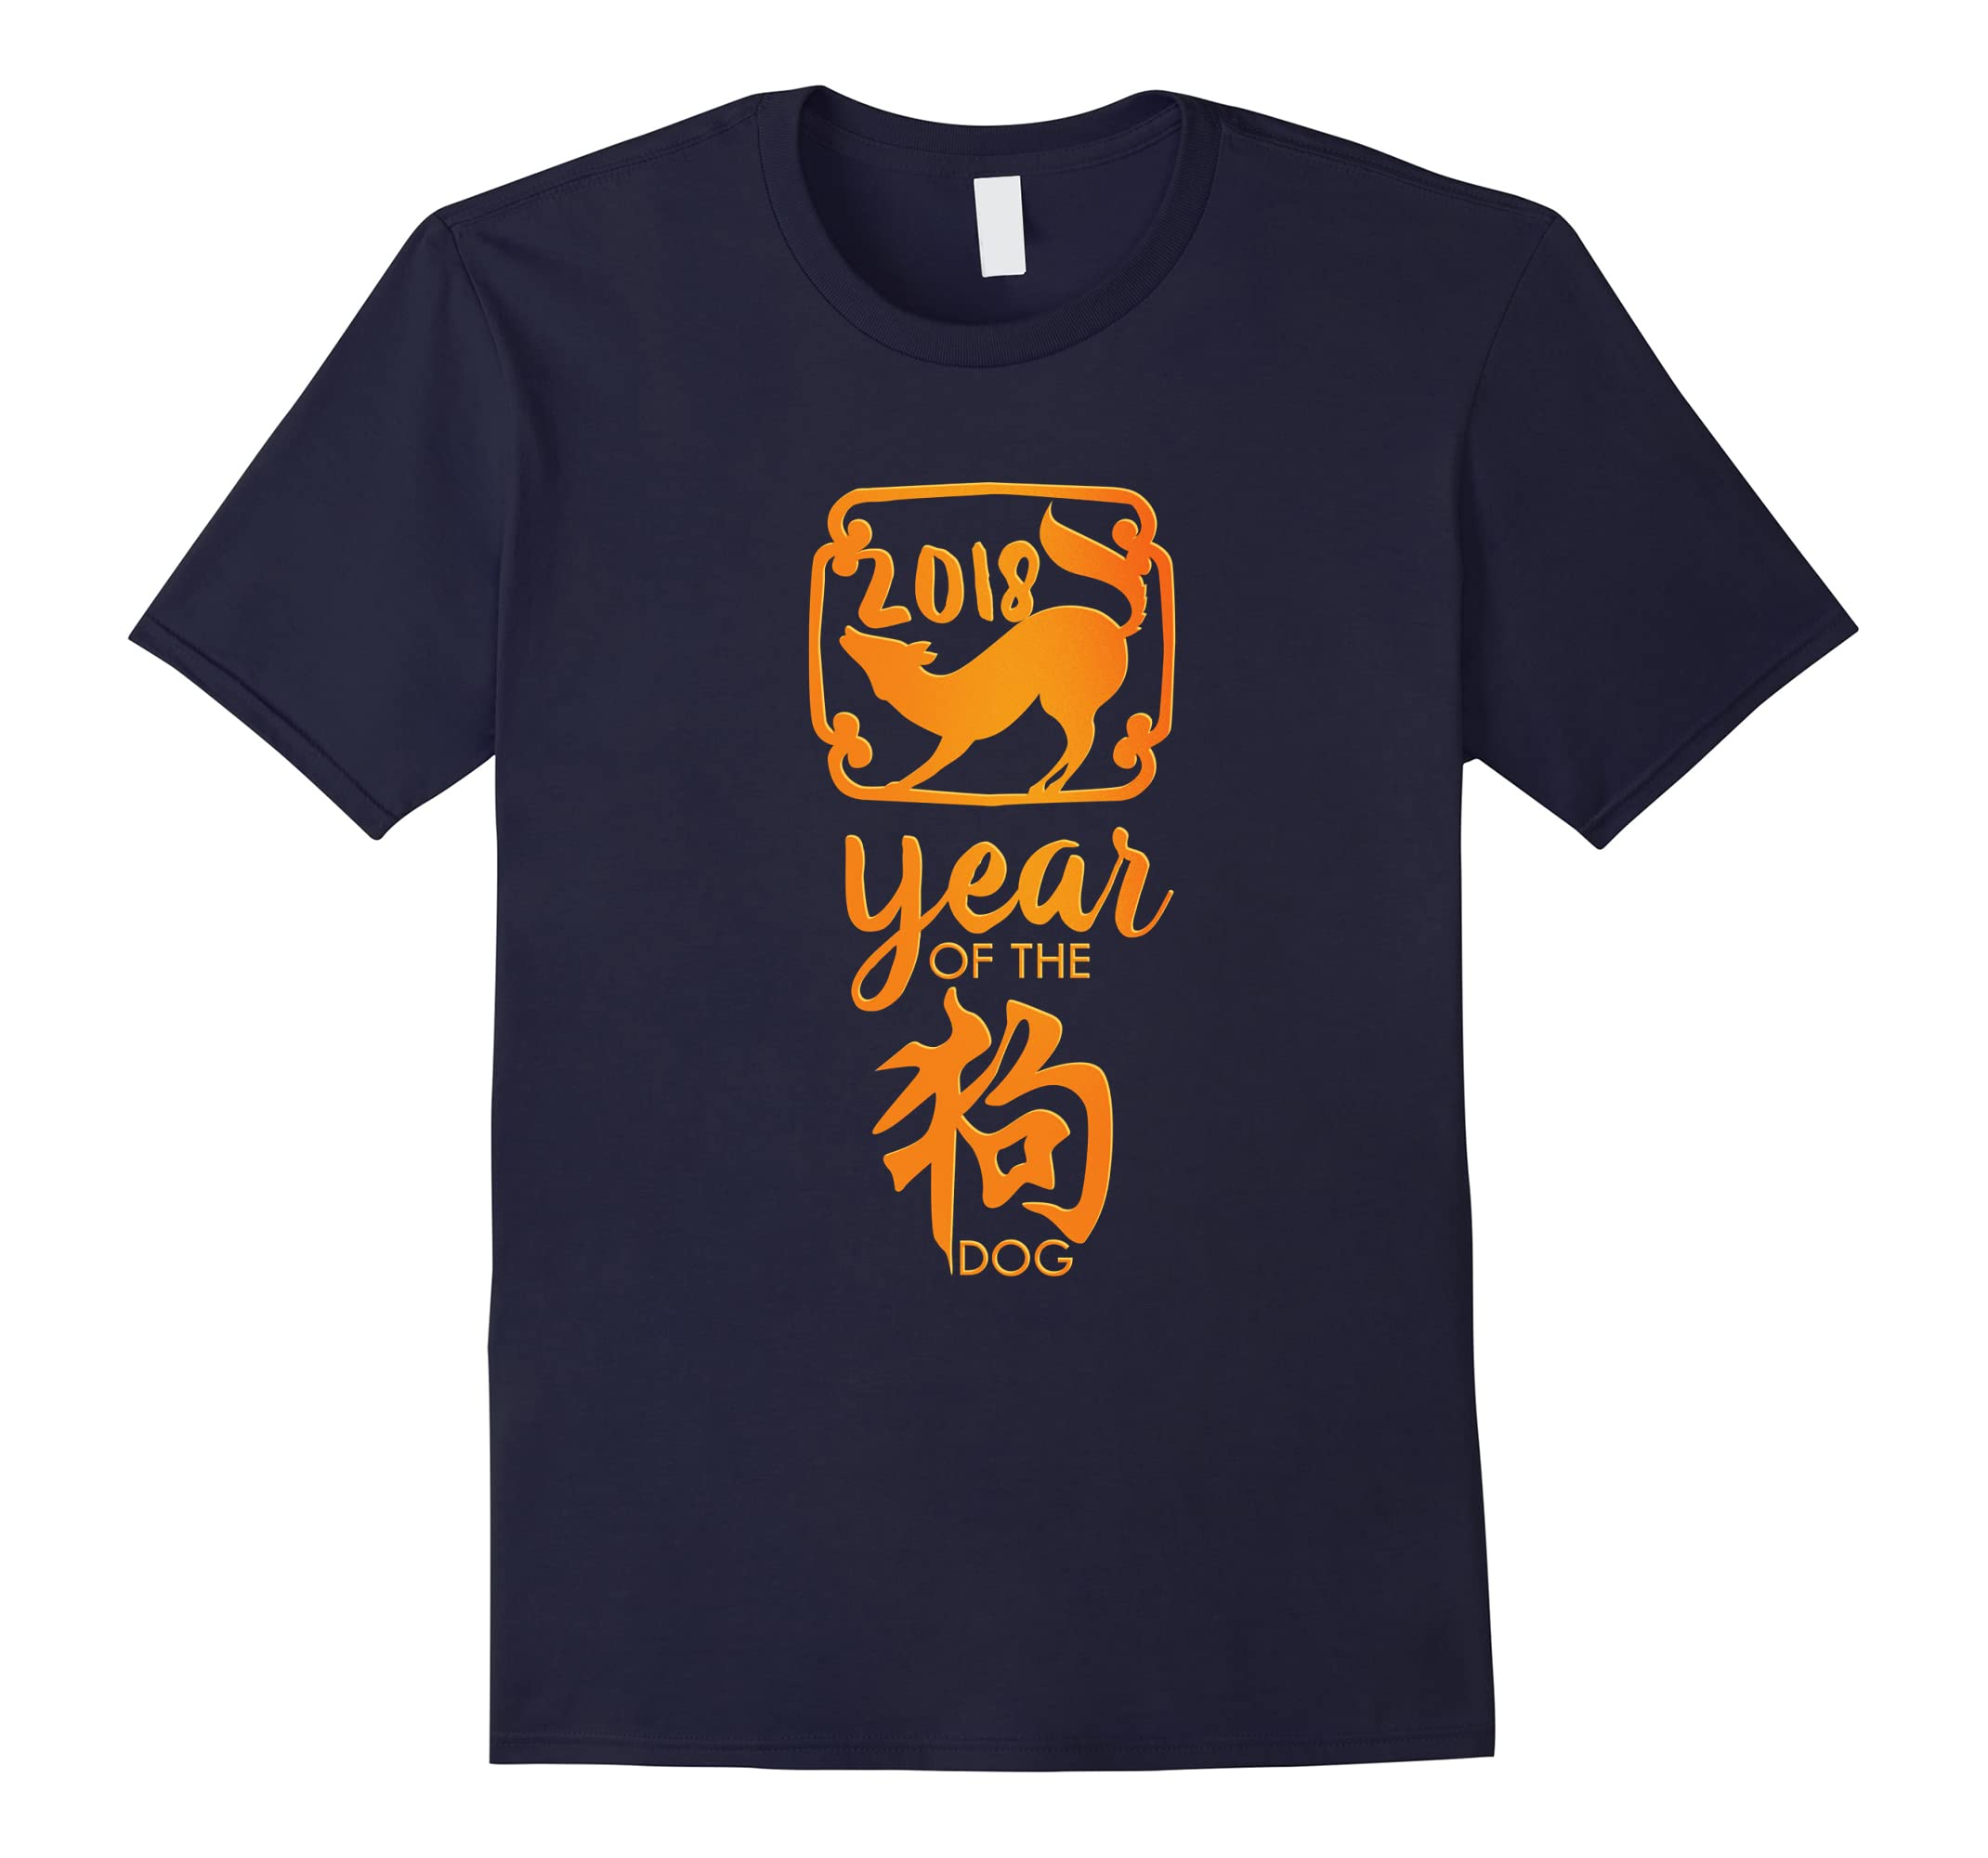 2018 Year of The Dog Chinese New Year T shirt-ah my shirt one gift